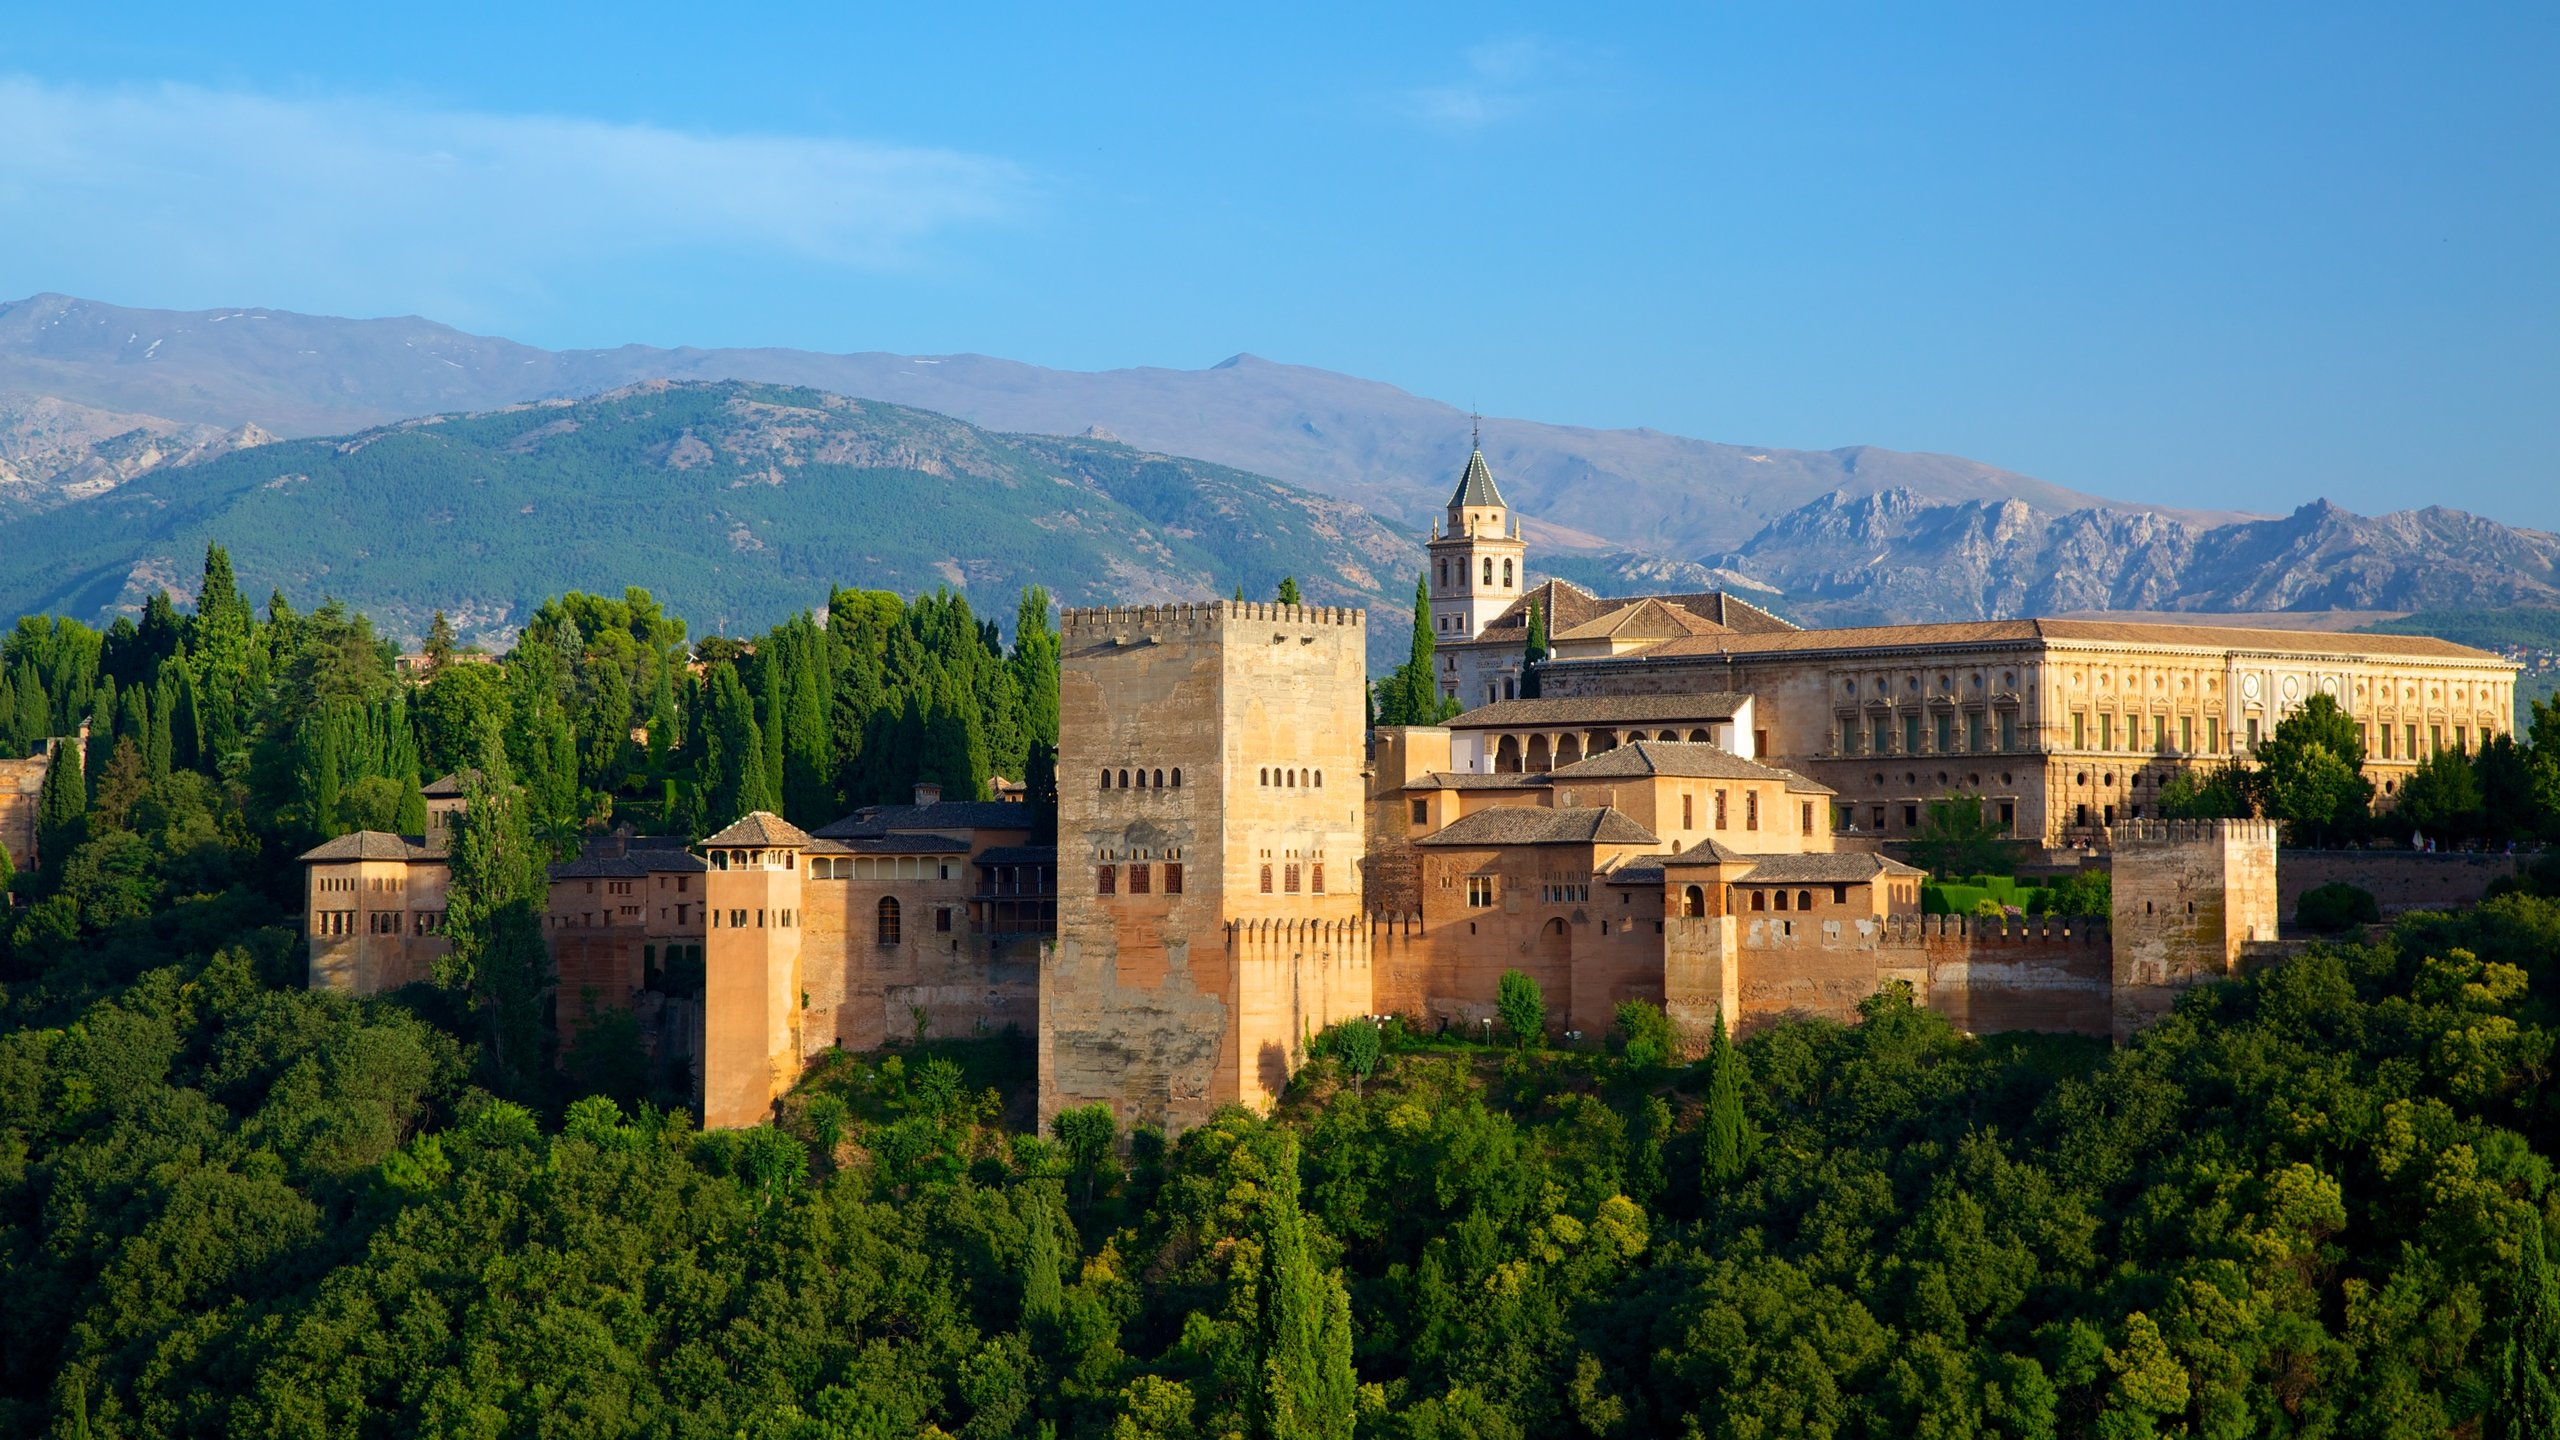 One of the most popular hilltop lookouts in Spain offers incredible views of the city of Granada, the Alhambra and the mountainous landscape beyond.